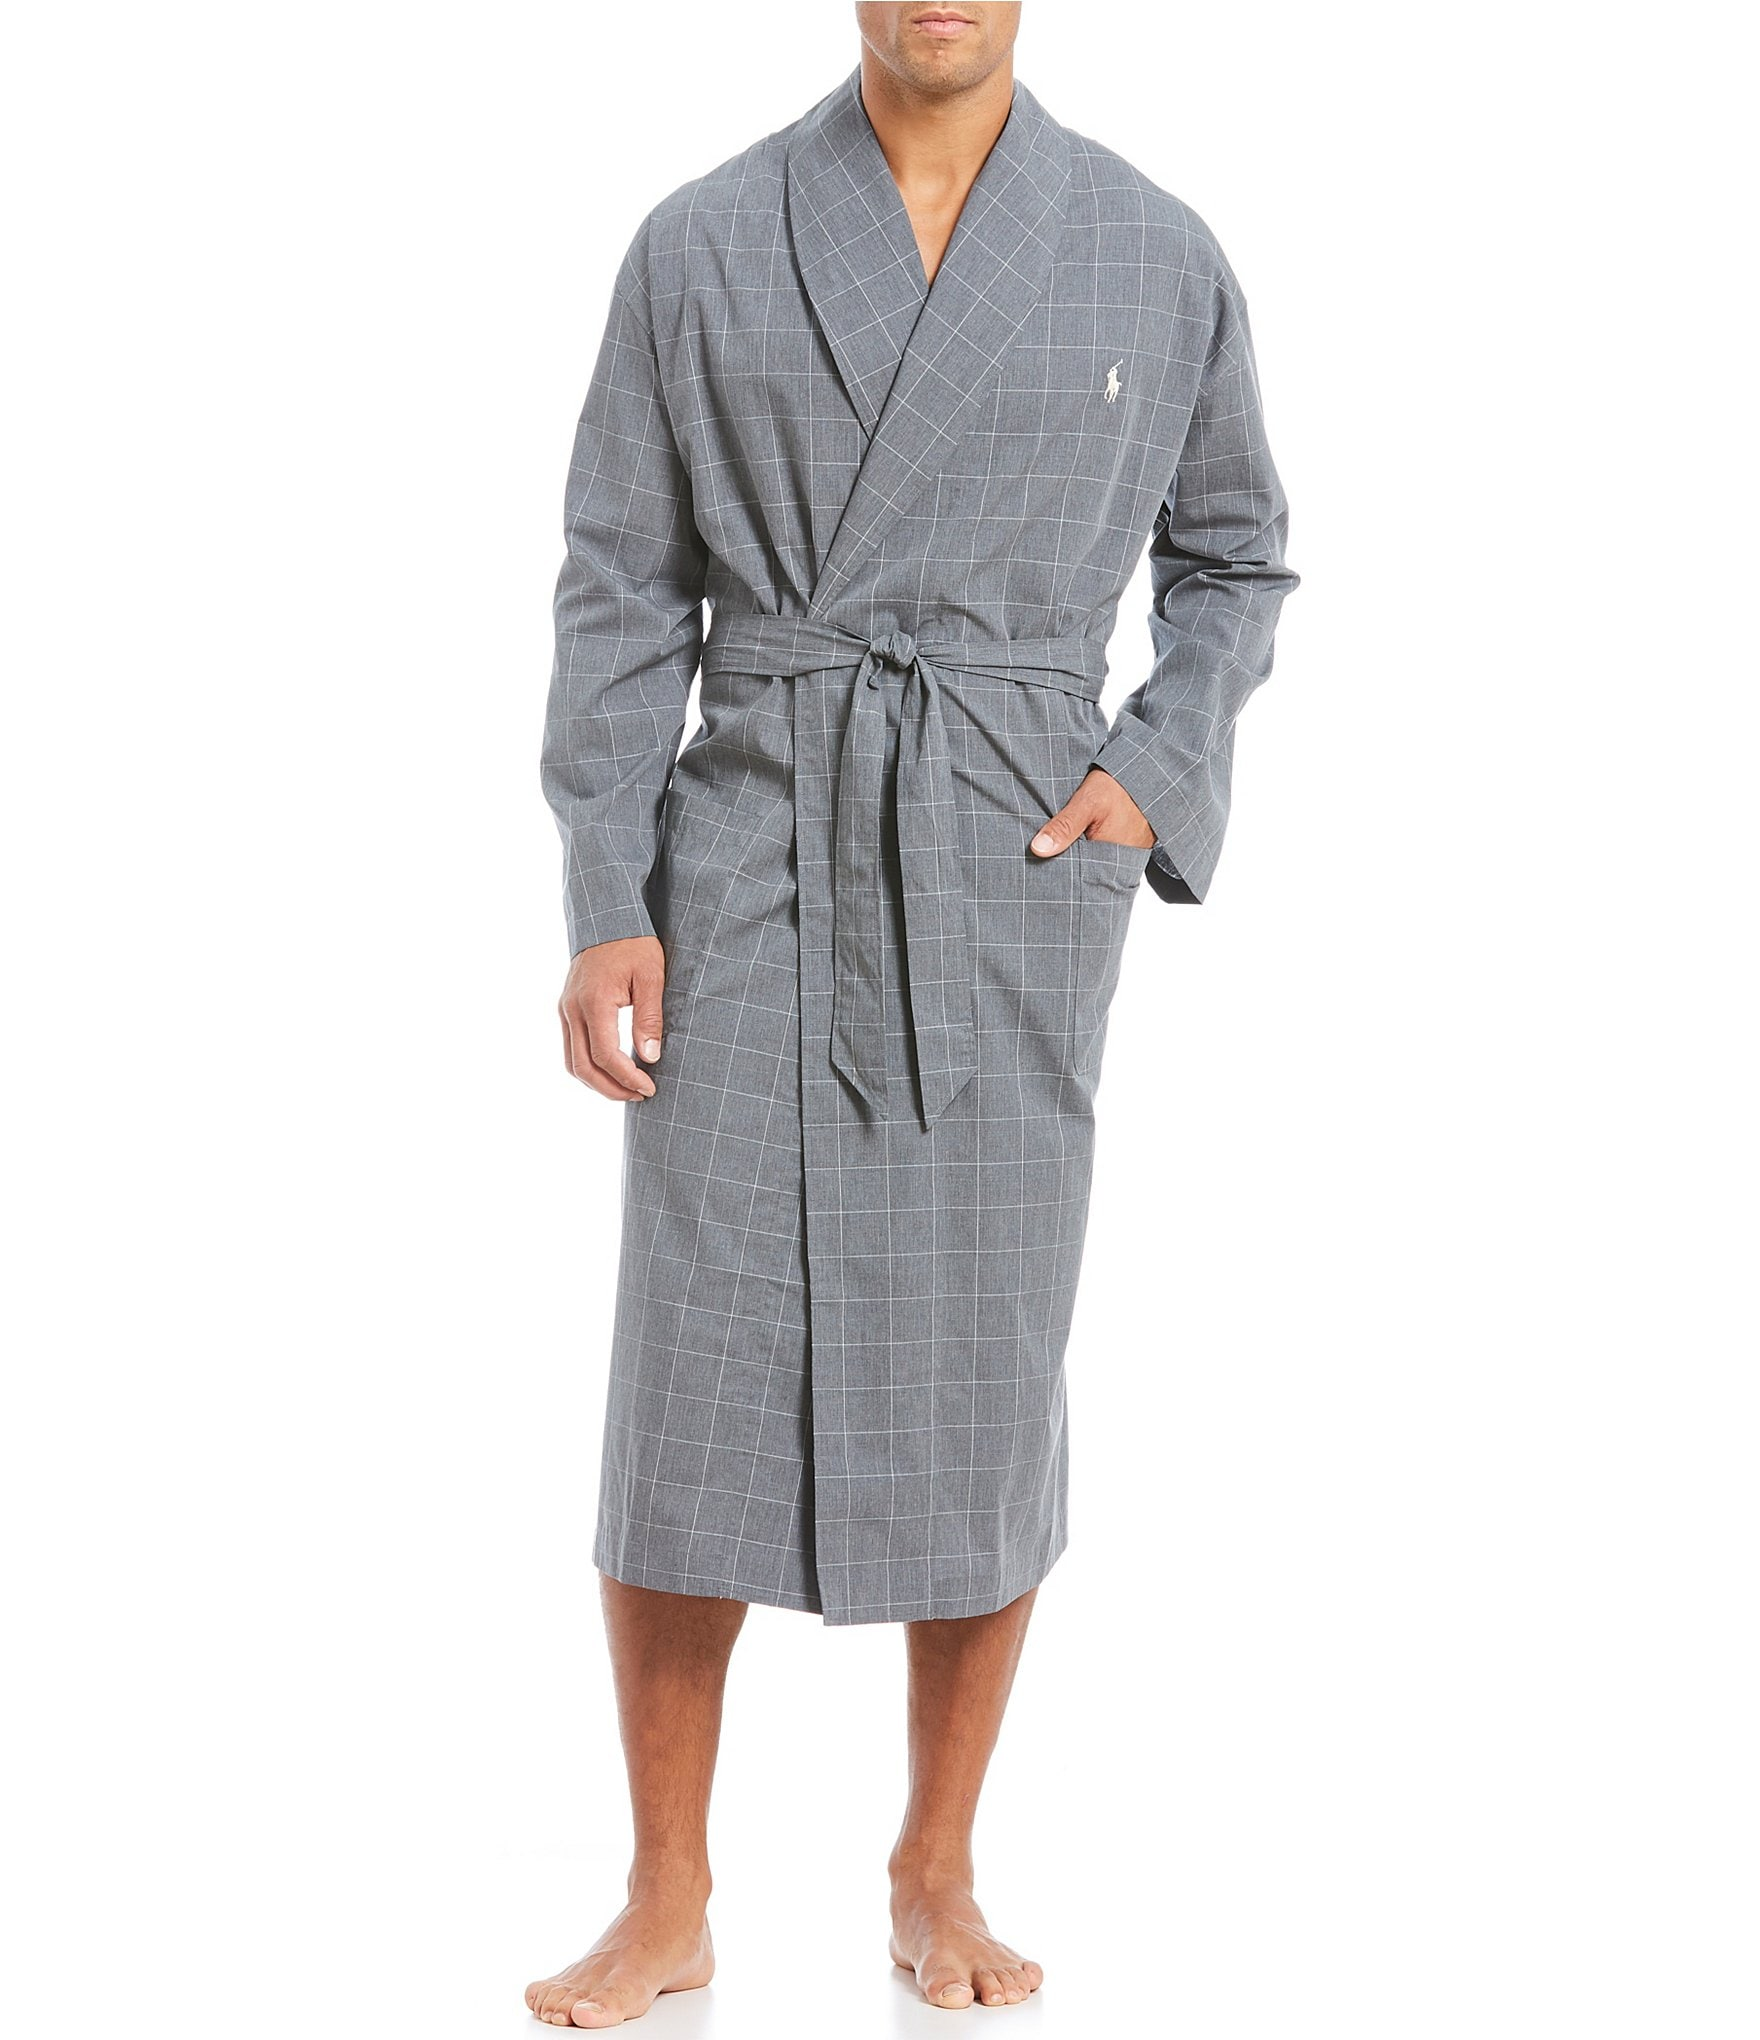 Polo Robe Ralph Polo Lauren Windowpane vY7b6gImfy